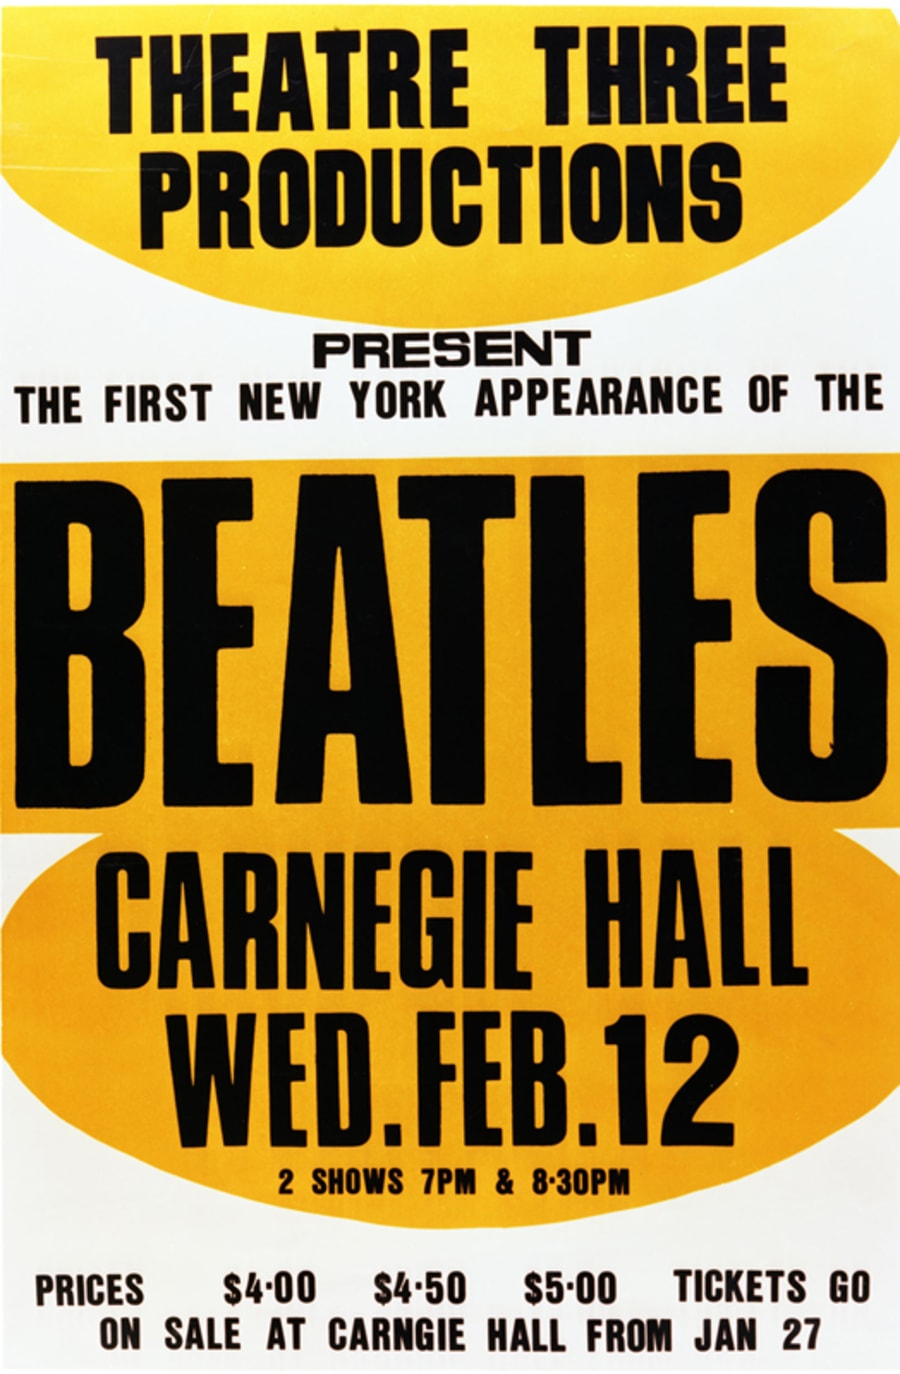 Beatles poster from Carnegie Hall